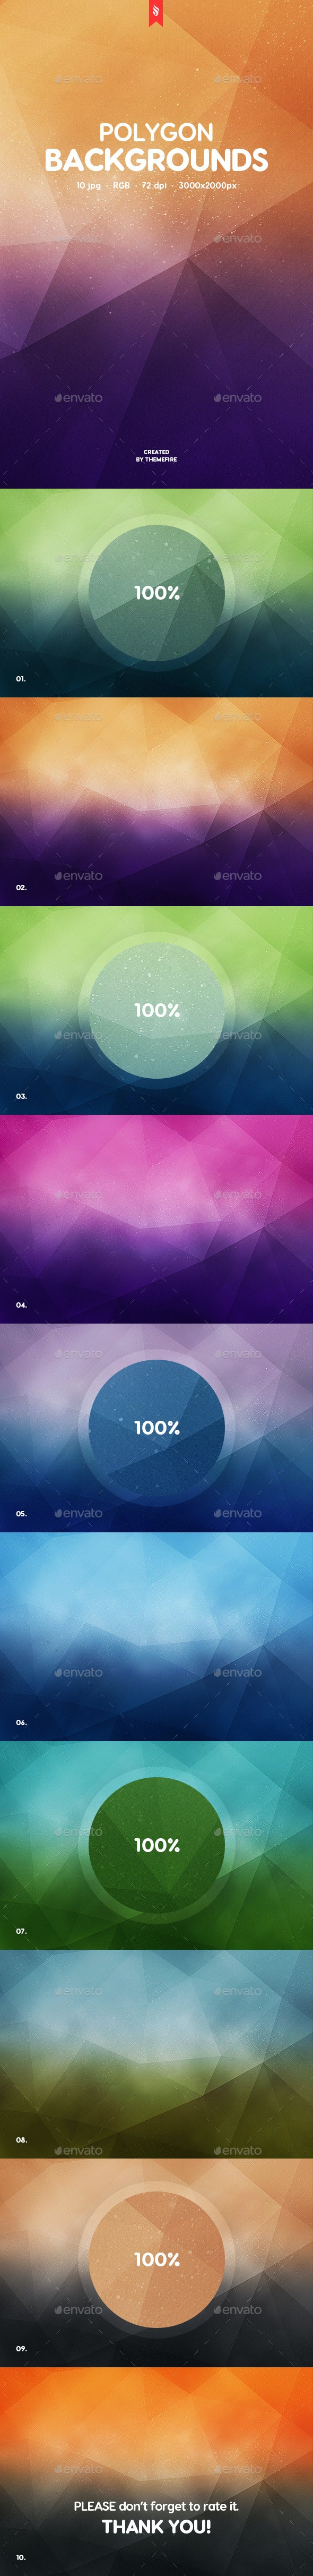 10 Polygon Backgrounds - Abstract Backgrounds